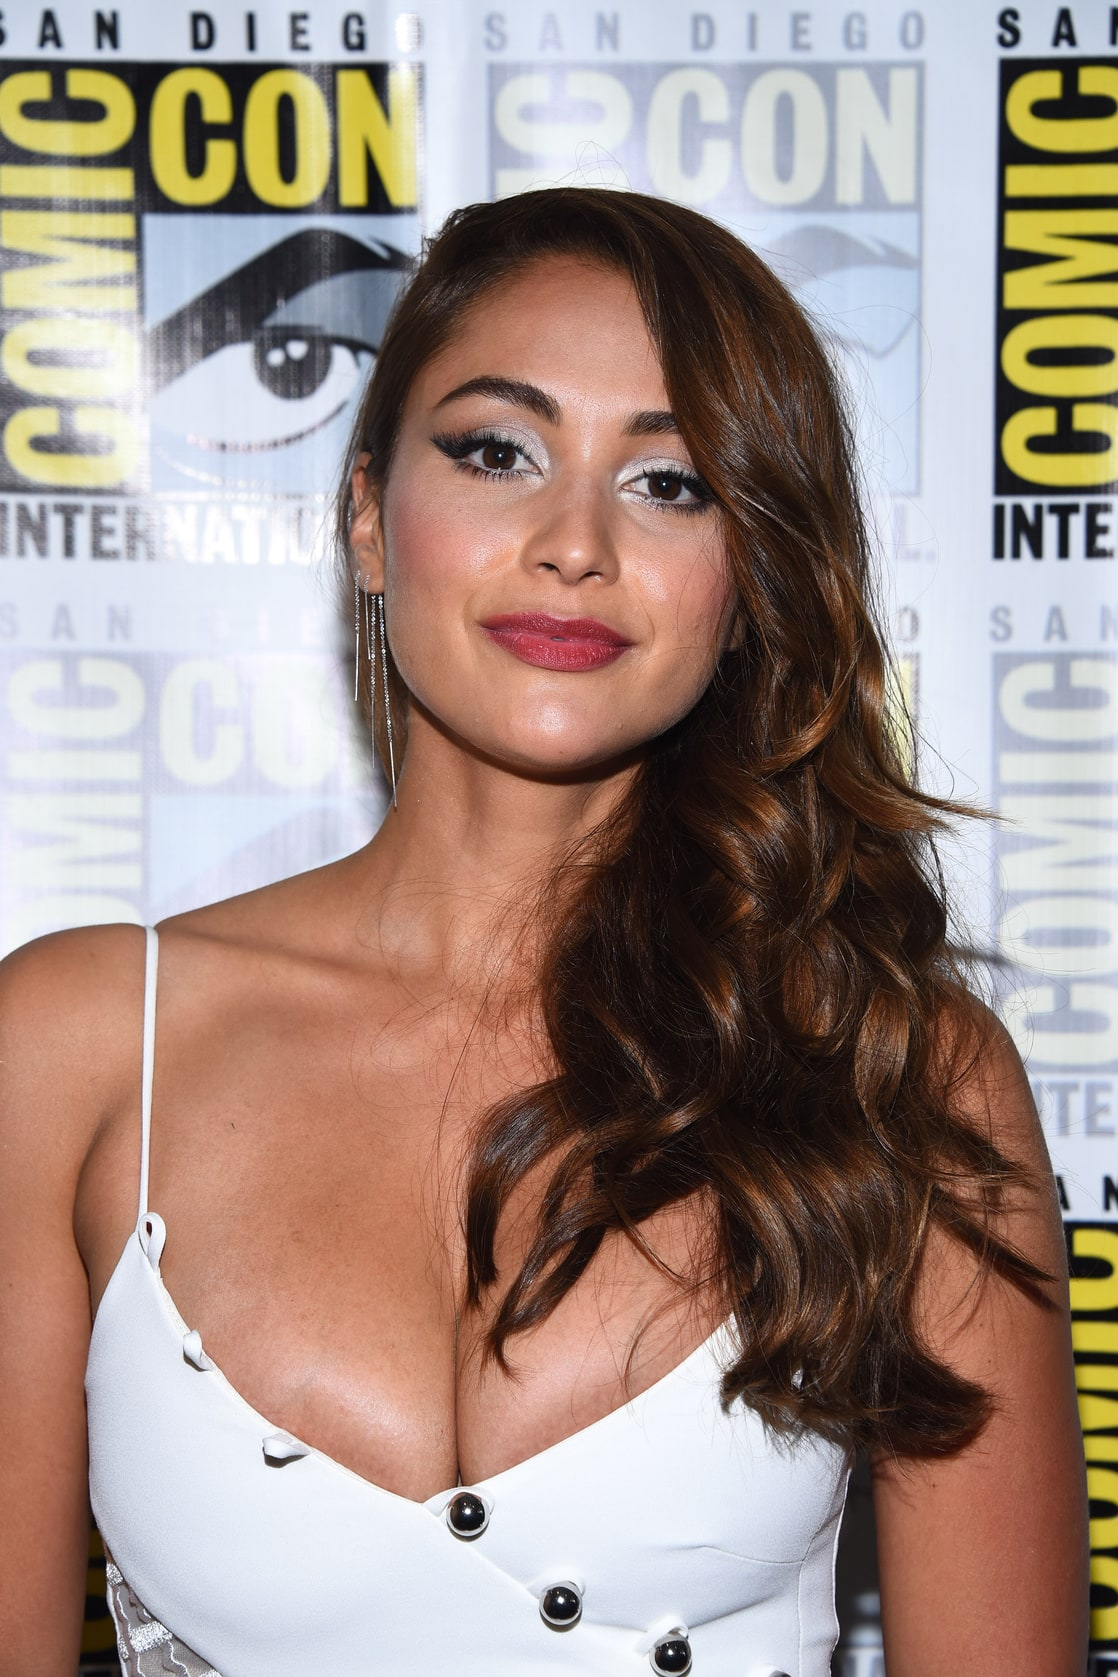 Lindsey Morgan naked (36 photo), Topless, Hot, Instagram, butt 2018